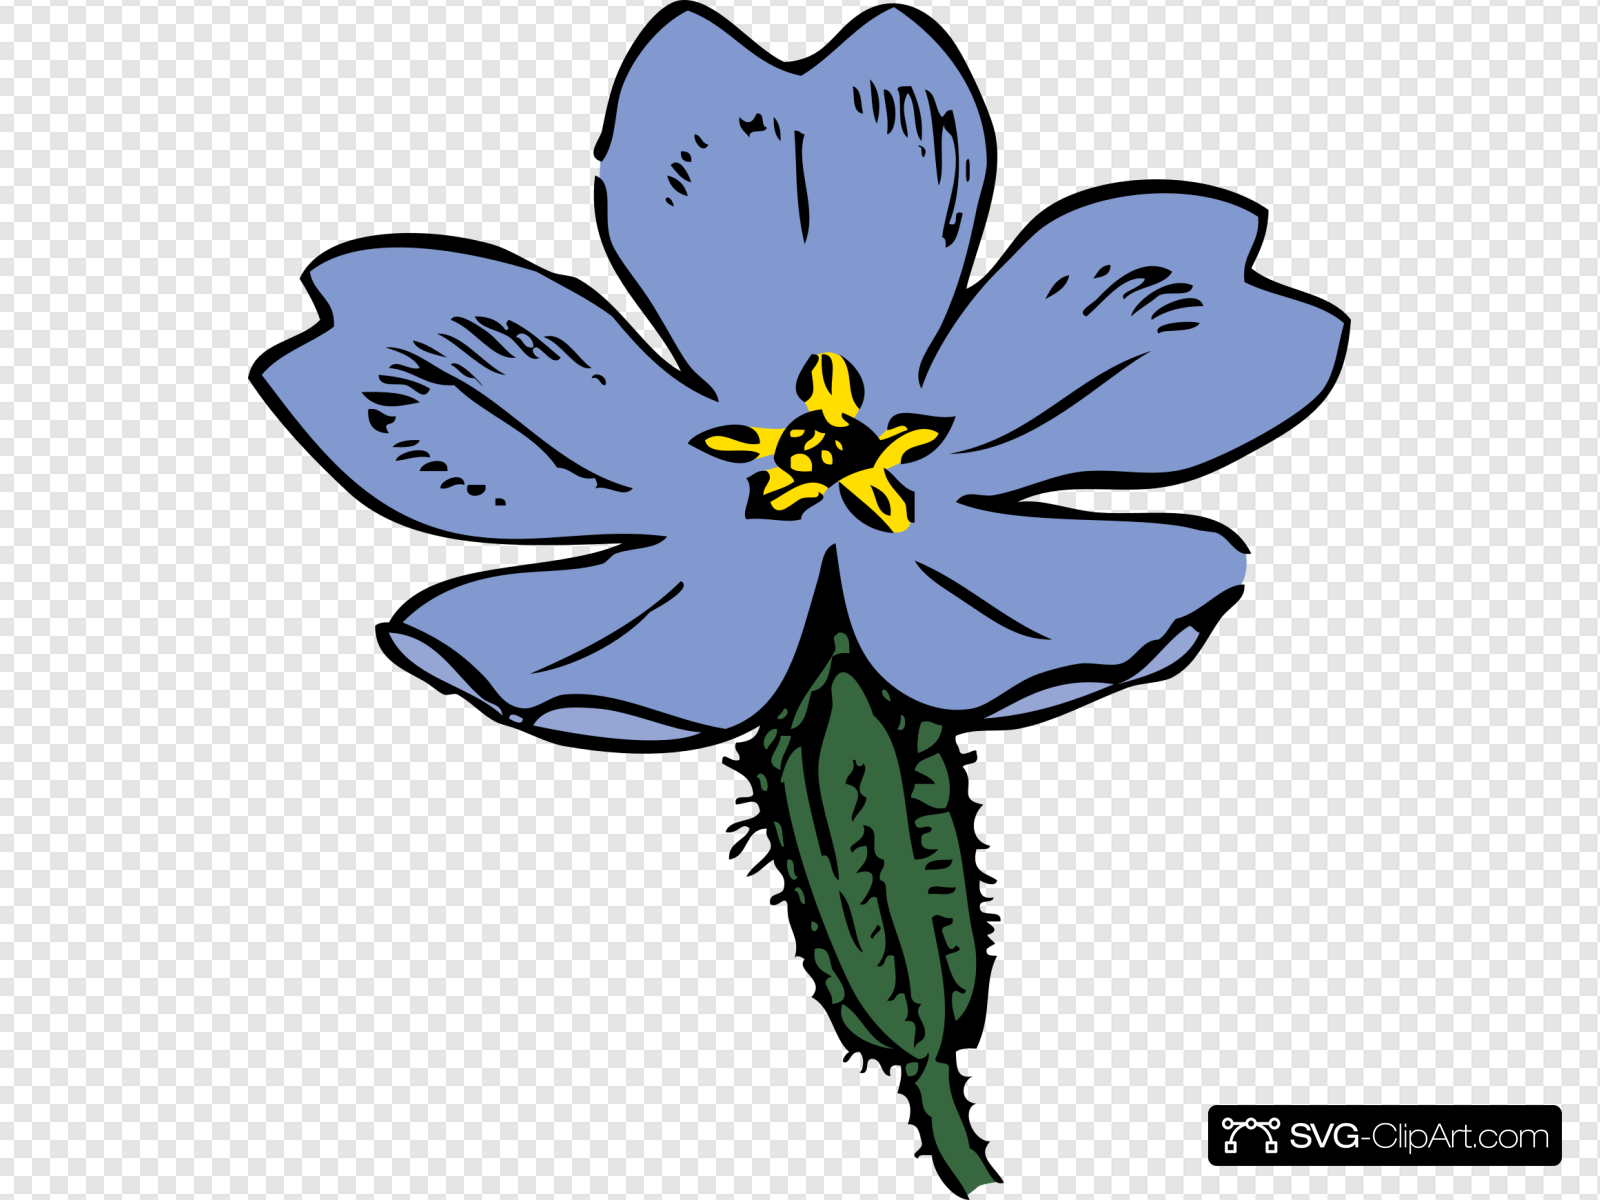 Primrose Bloom Clip art, Icon and SVG.